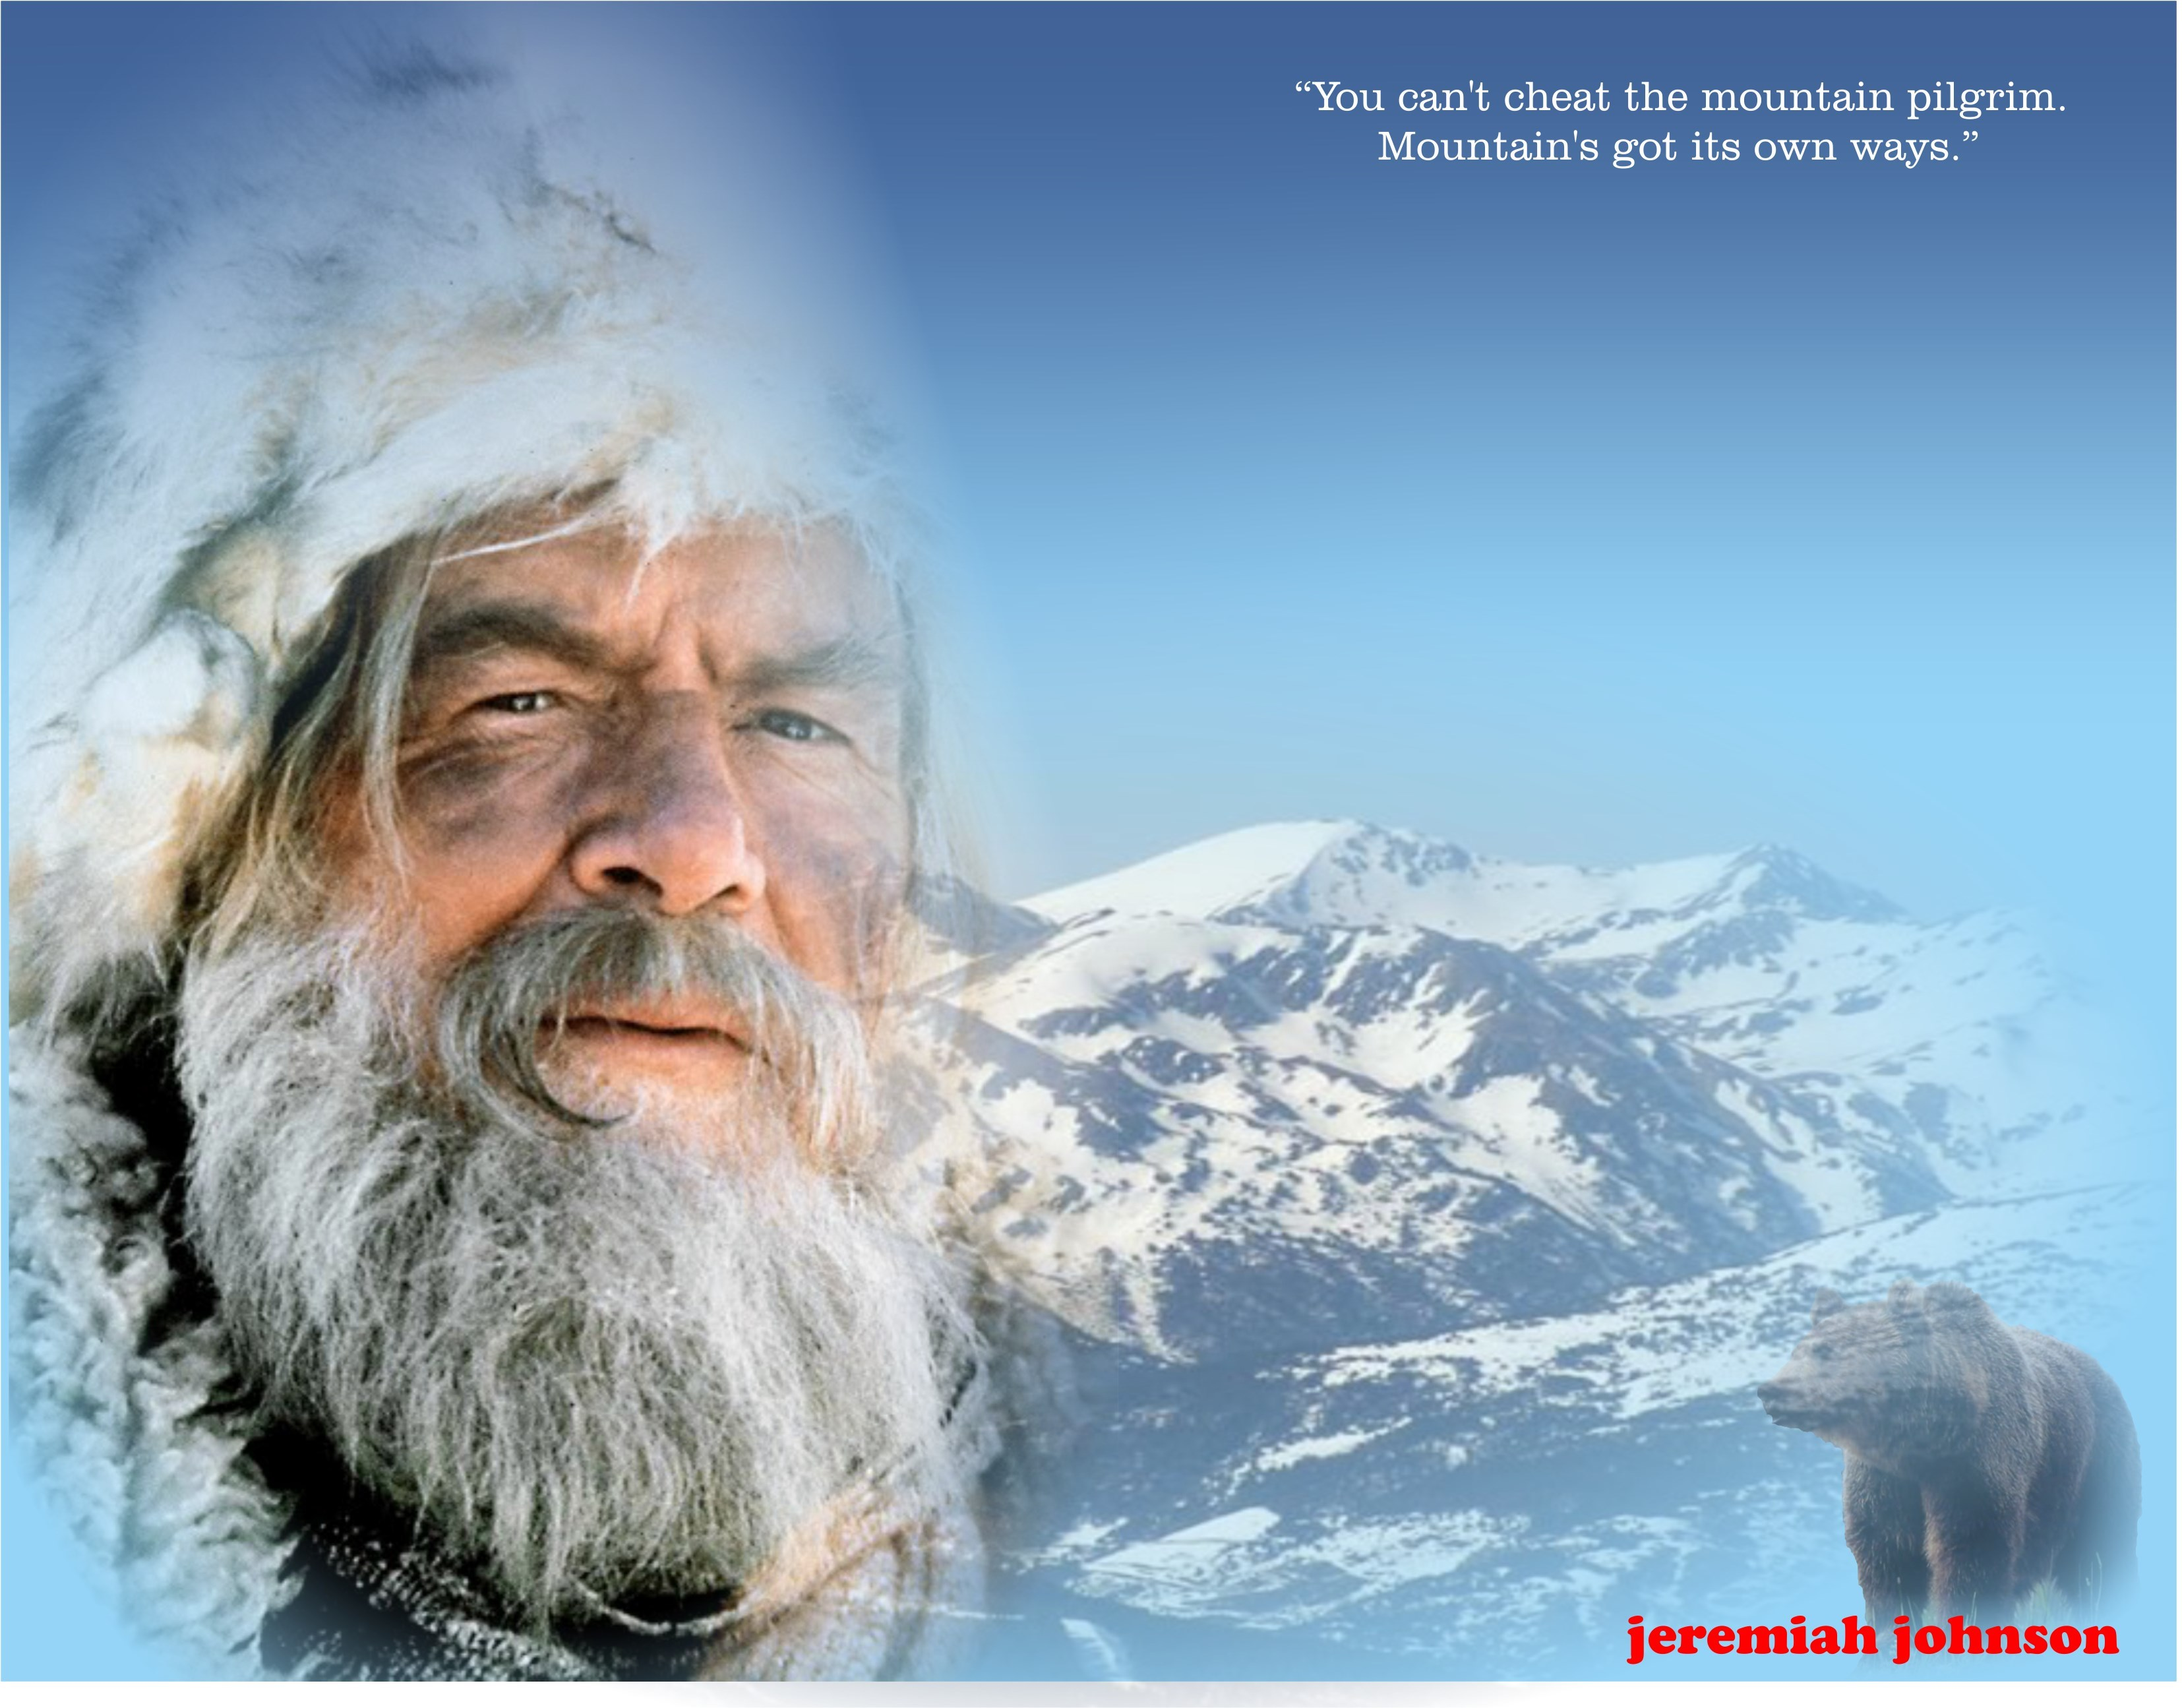 jeremiah johnson known people famous people news and